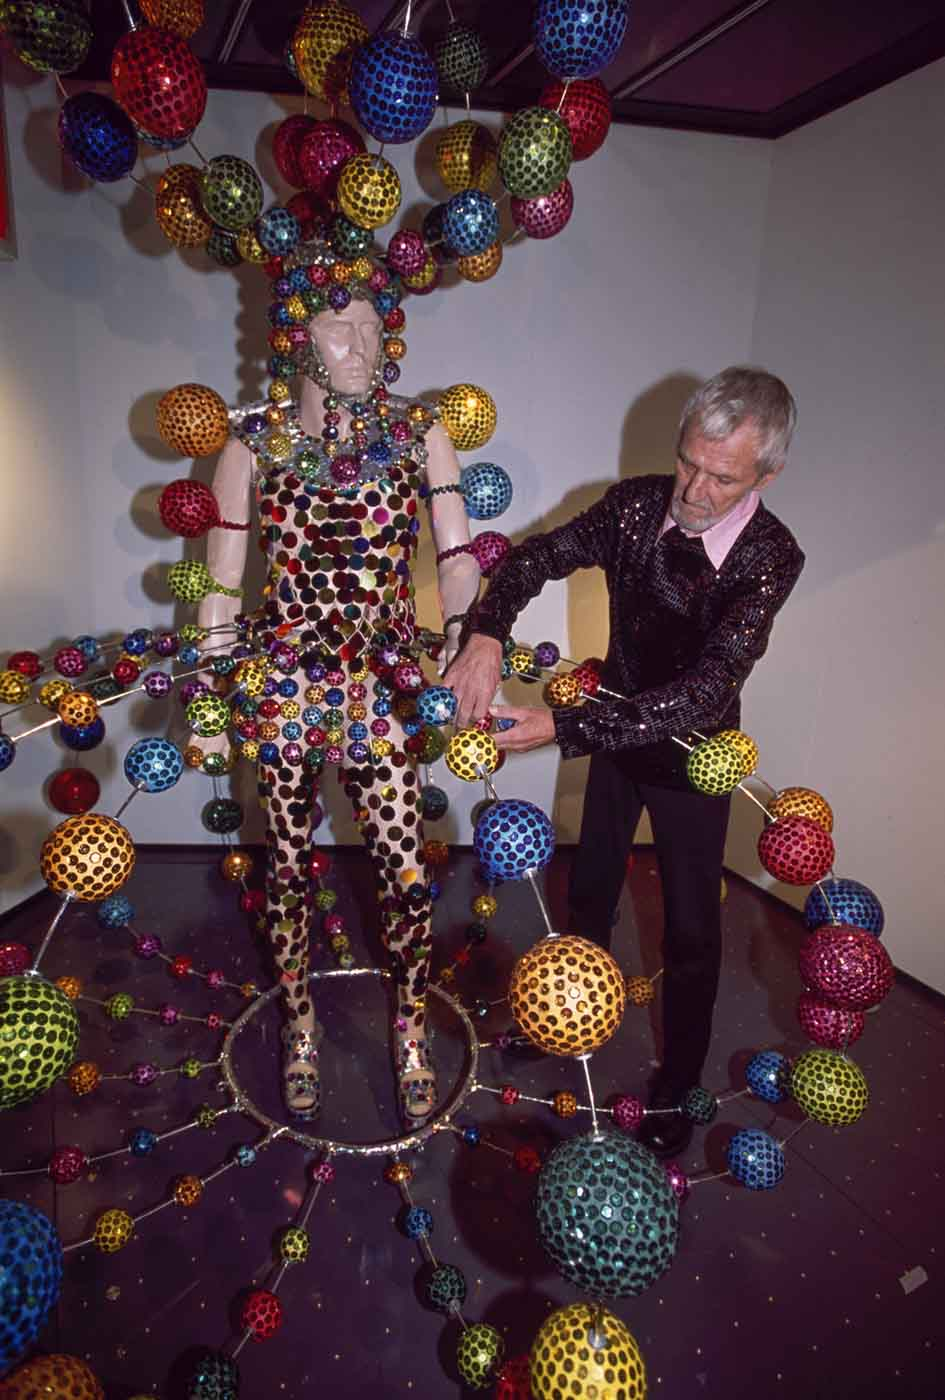 Man attaching sequinned ball to costume - click to view larger image